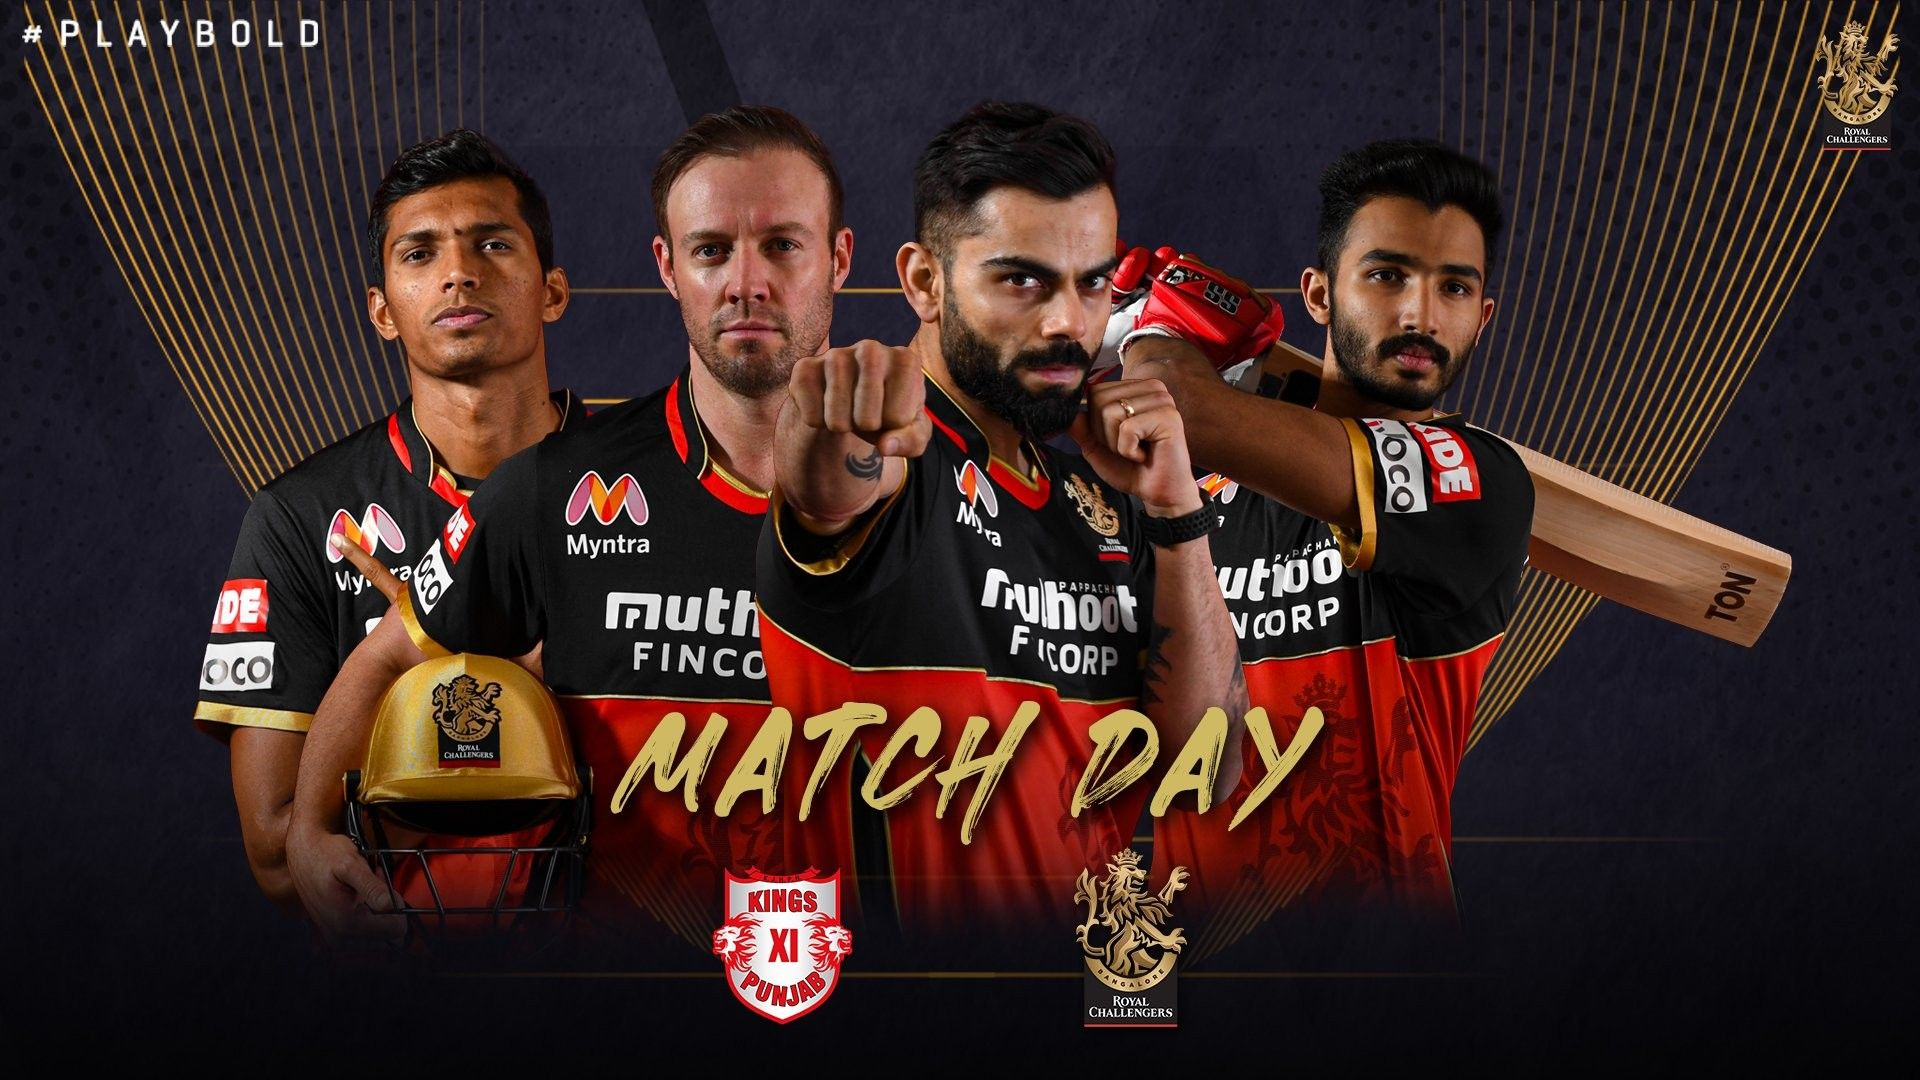 Pin By Kavyasree On My Saves Ipl Cricket Match Csk vs rcb hd wallpapers 1080p download